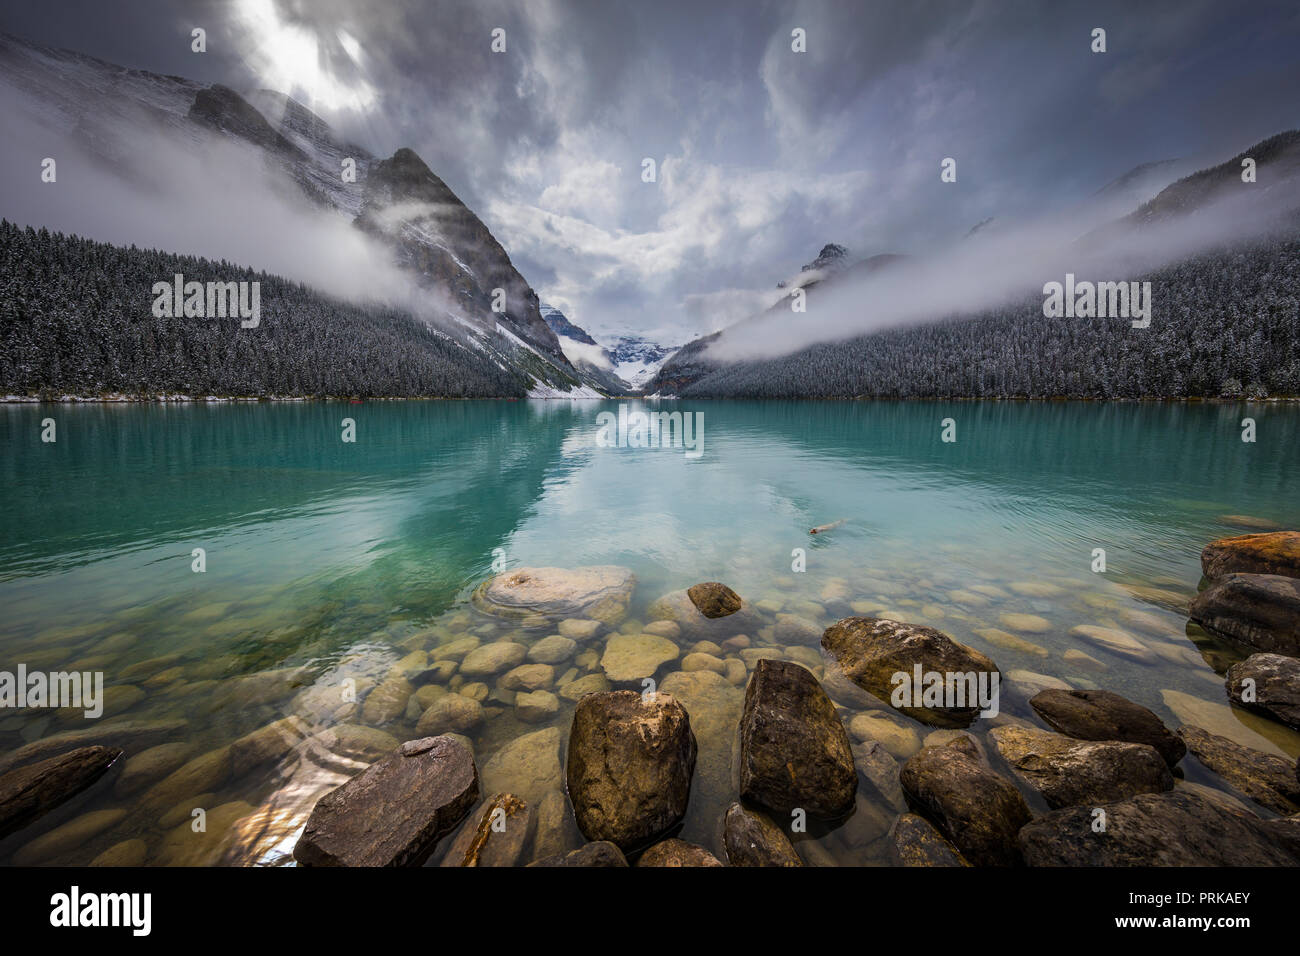 Lake Louise est un lac glaciaire dans le parc national de Banff en Alberta, Canada. Photo Stock